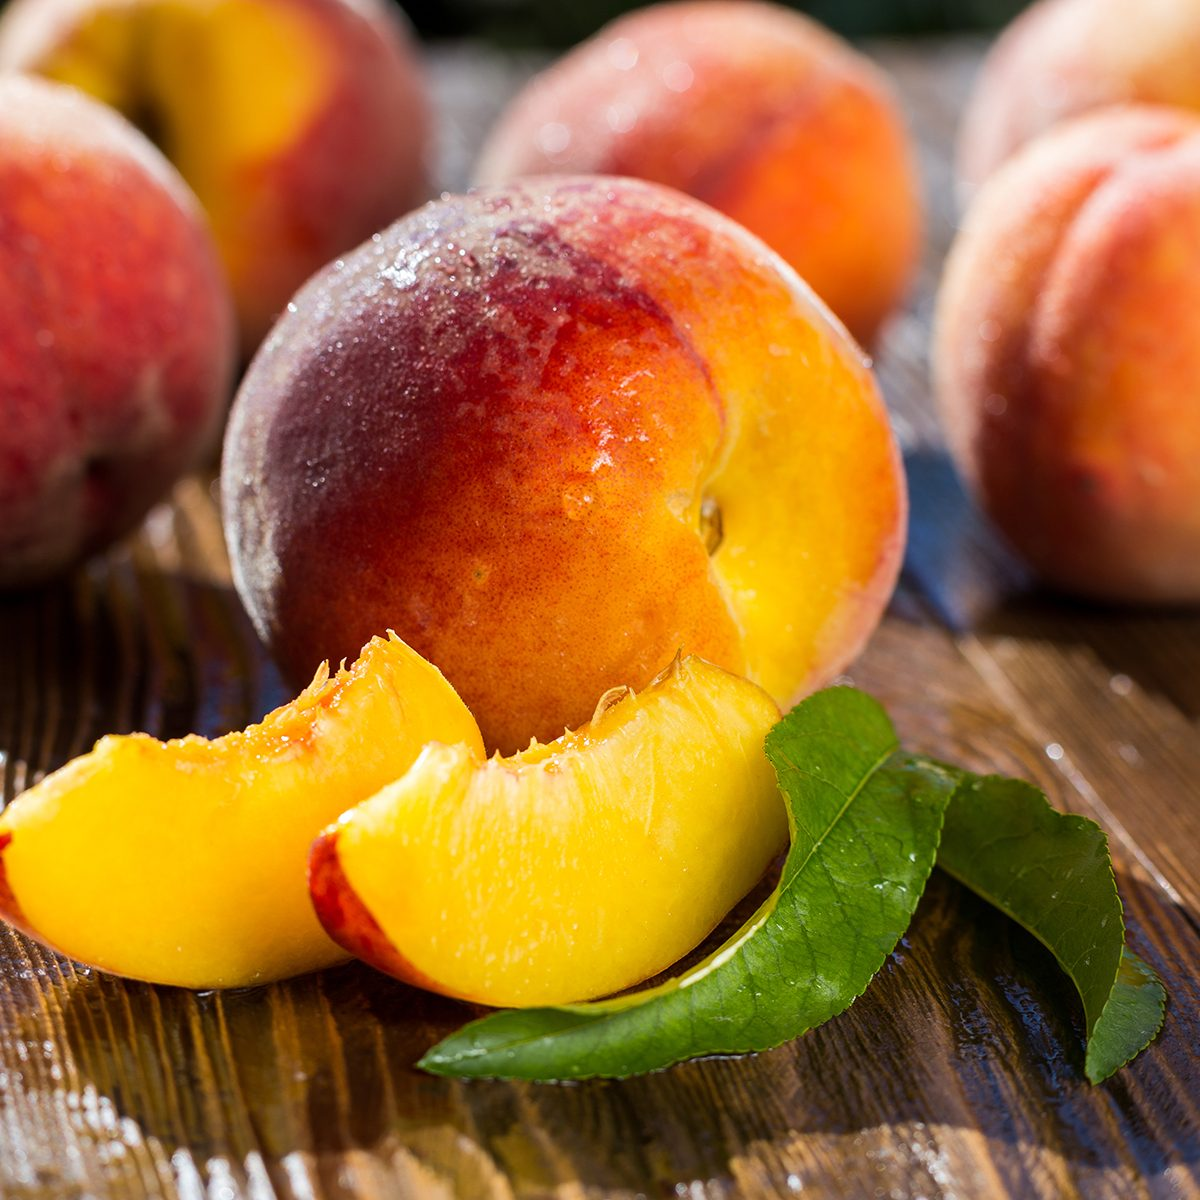 Fresh sweet group of sliced peaches on wooden background in the garden